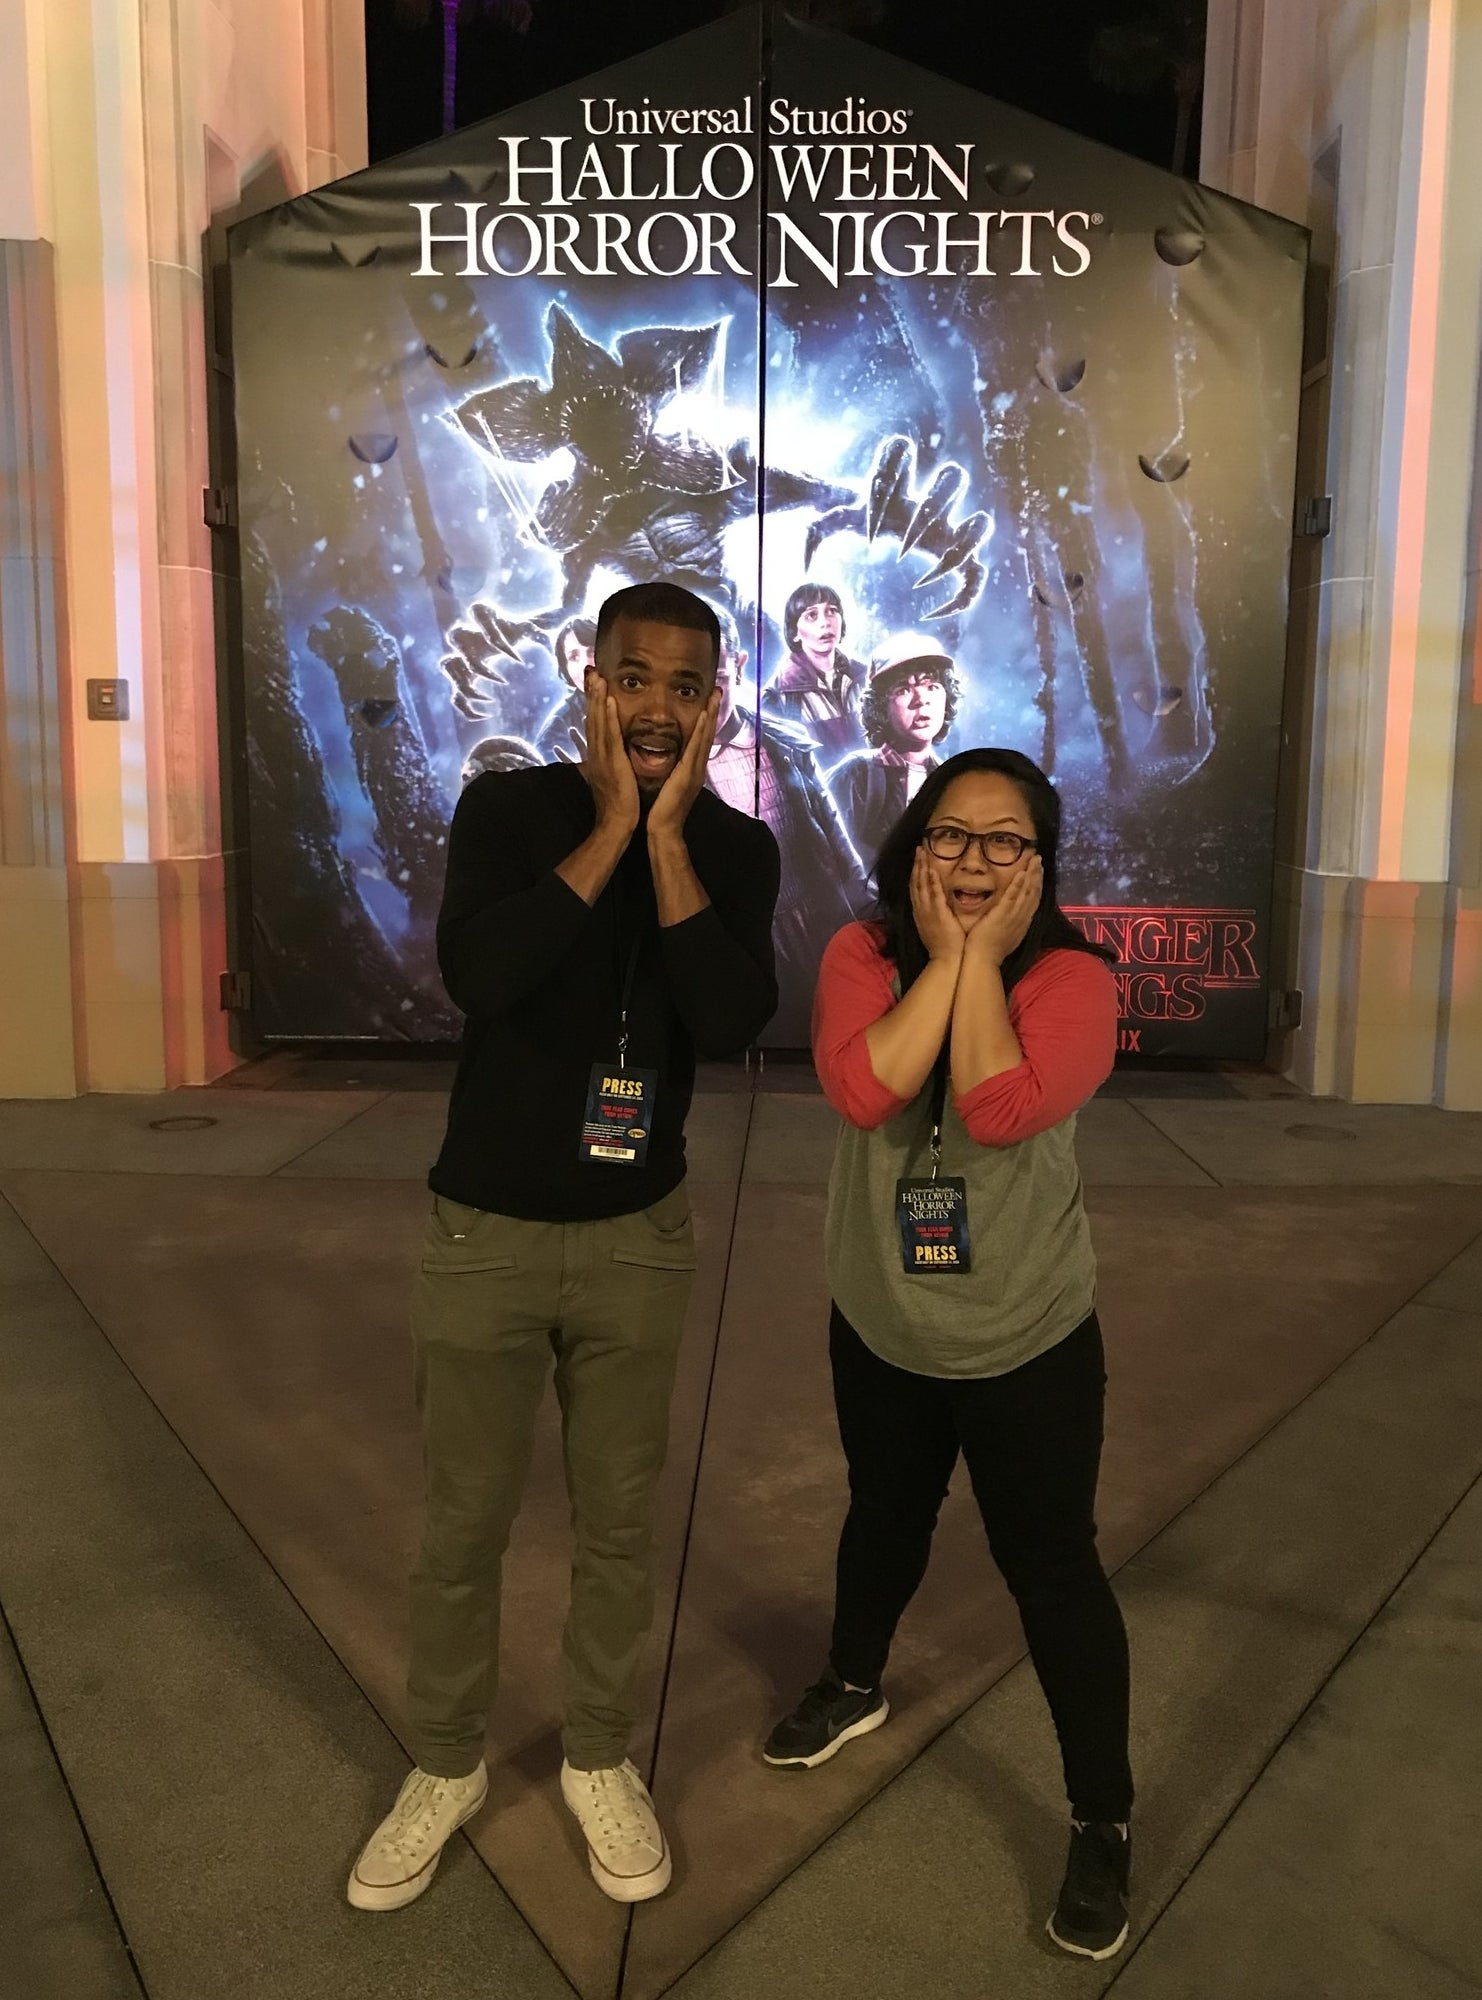 The whole adventure took us almost five hours (with express passes!), one Panda Express break, and several hundred screams. But, after all was said and done, we managed to survive. Here's what we thought...